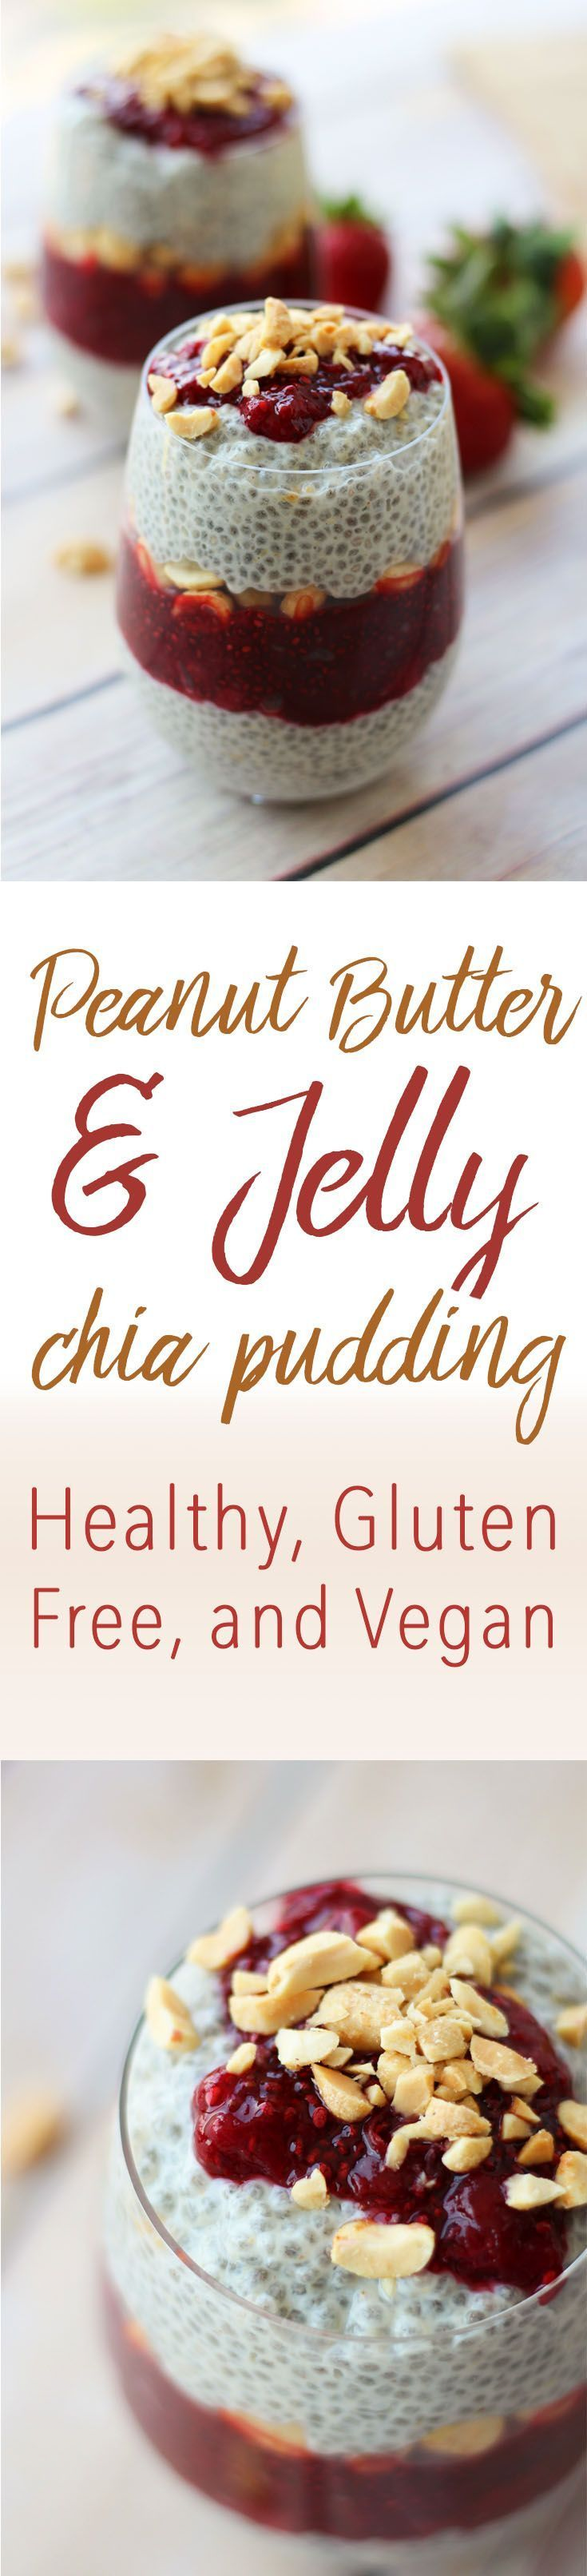 Peanut Butter and Jelly Chia Pudding | Healthy, Vegan, Gluten Free